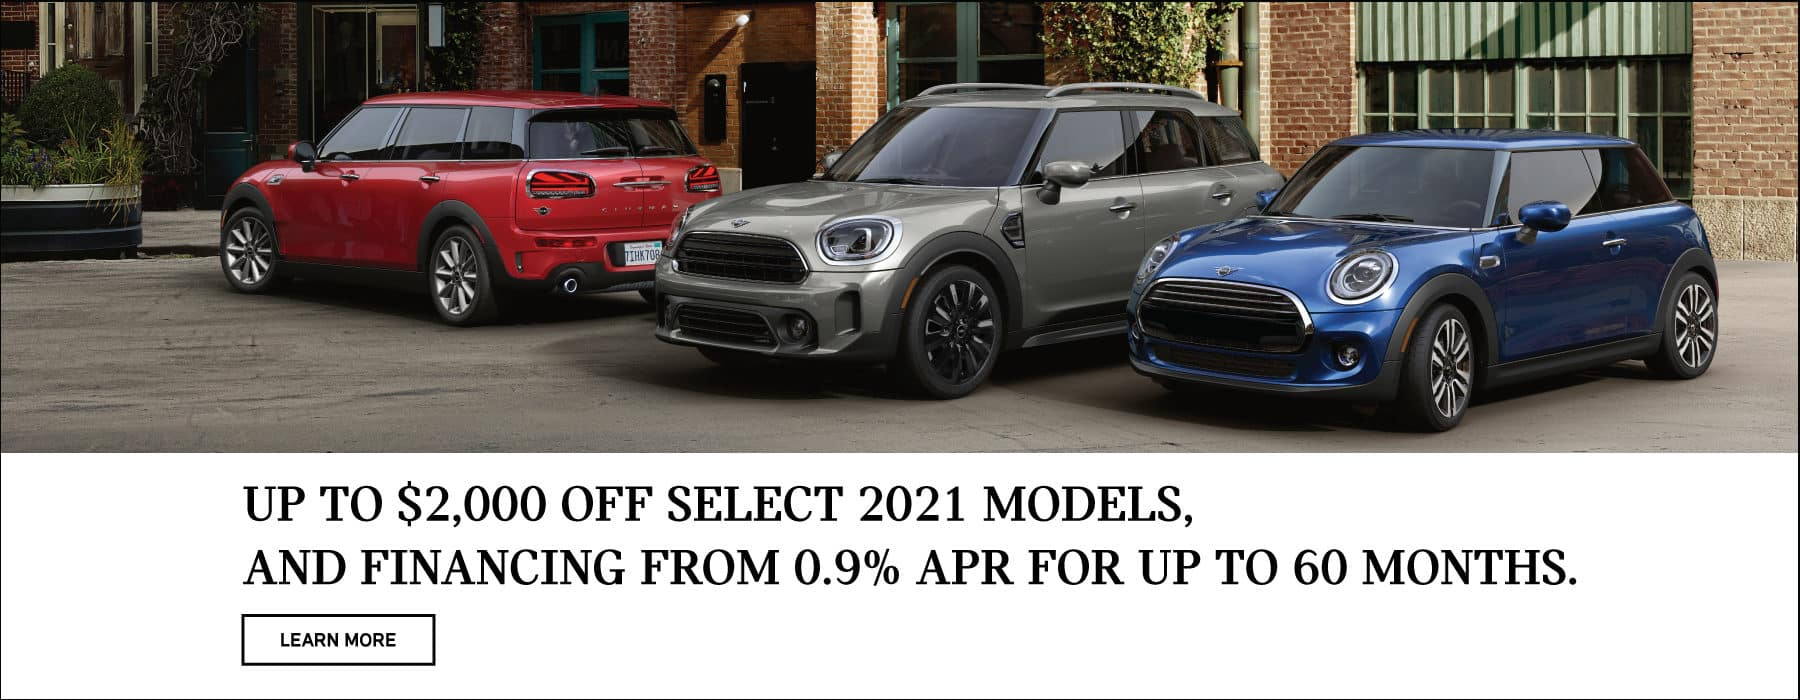 Up to $2000 off select MINI models. With 0.9% APR Financing for up to 60 months